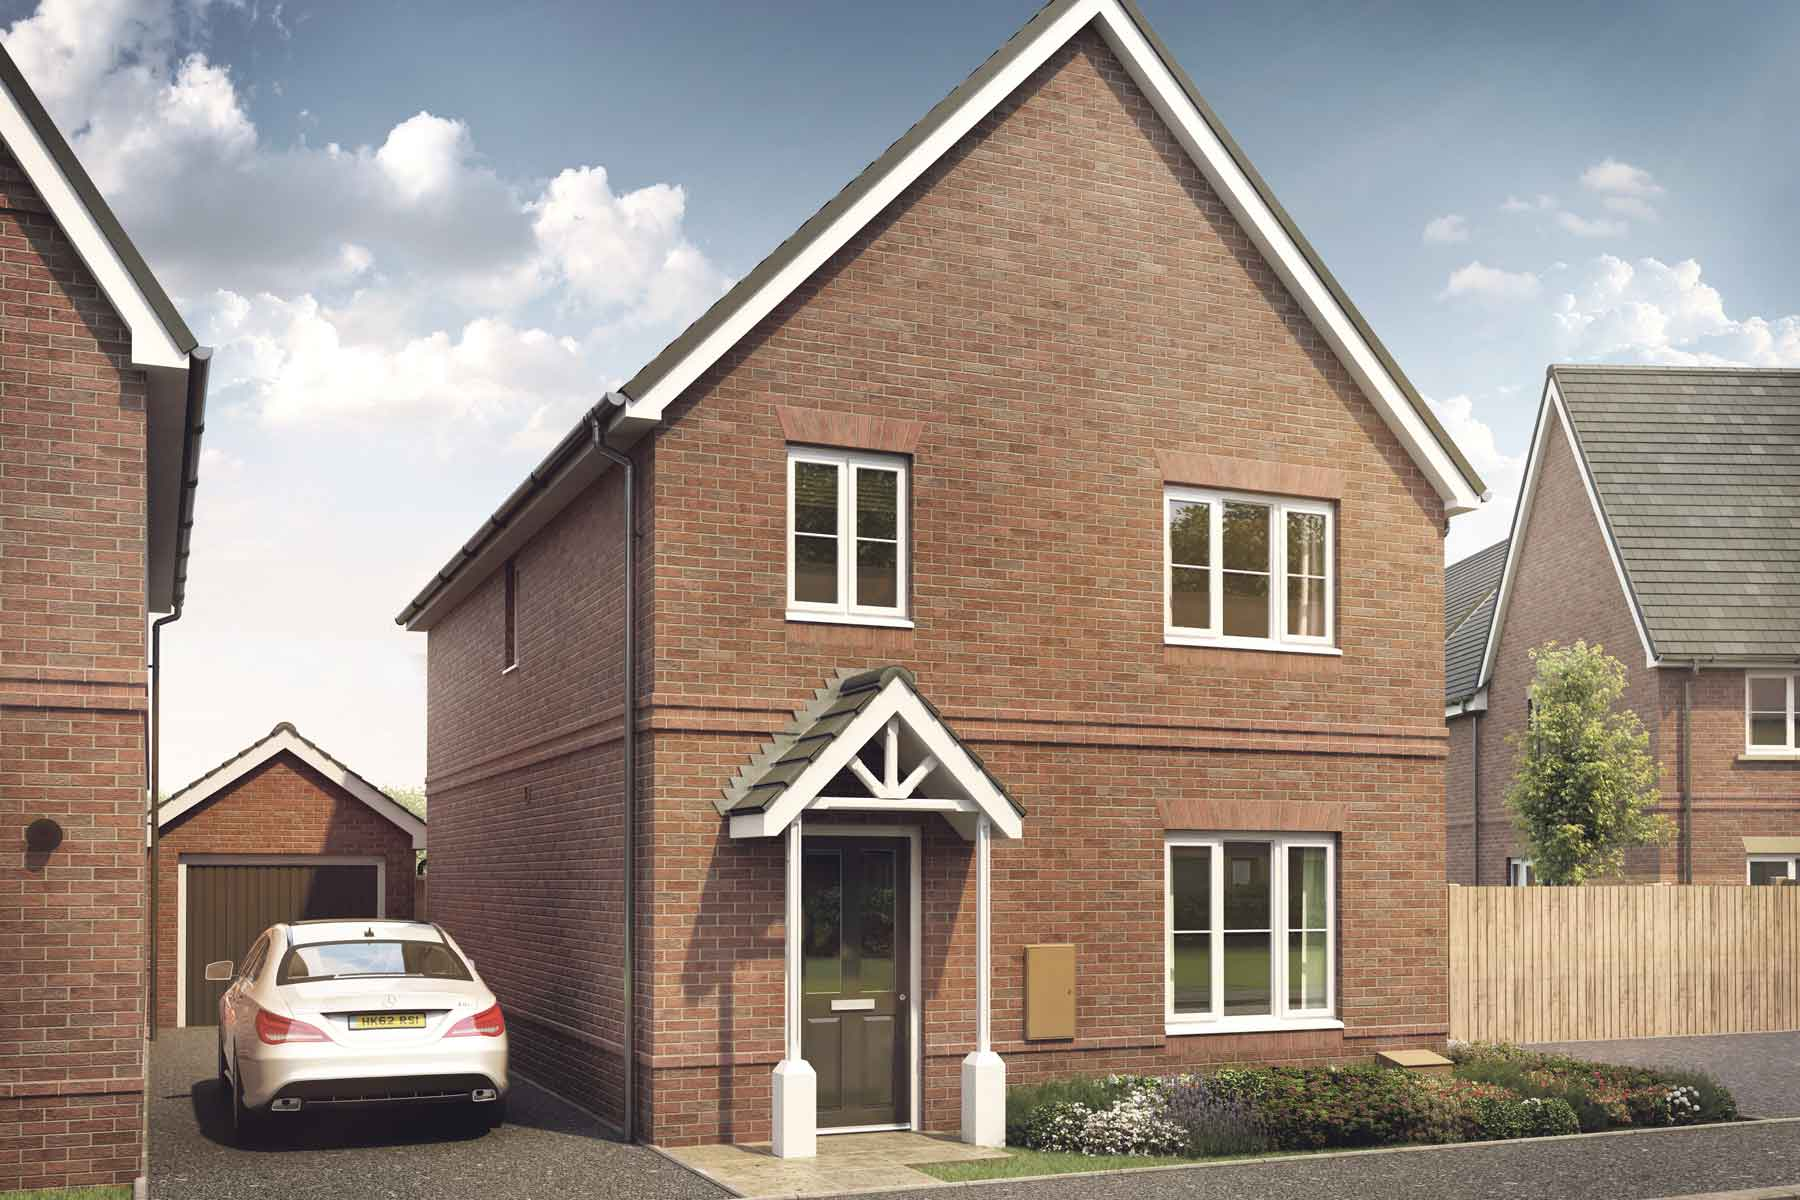 Artists impression of a typical Huxford home